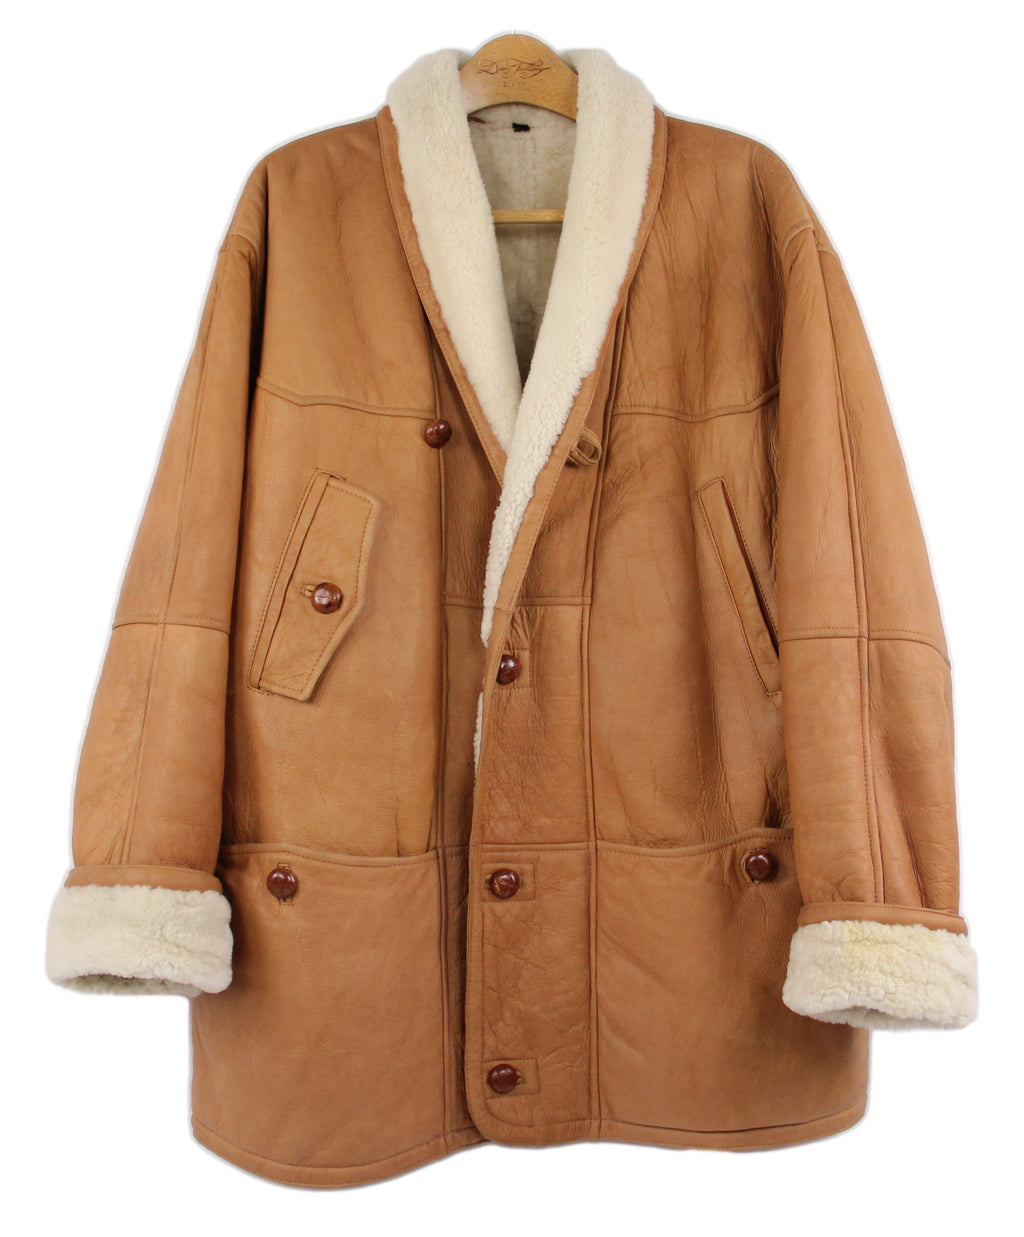 Camel Brown Supple Leather Shawl Collar Chunky Shearling Jacket, XXL